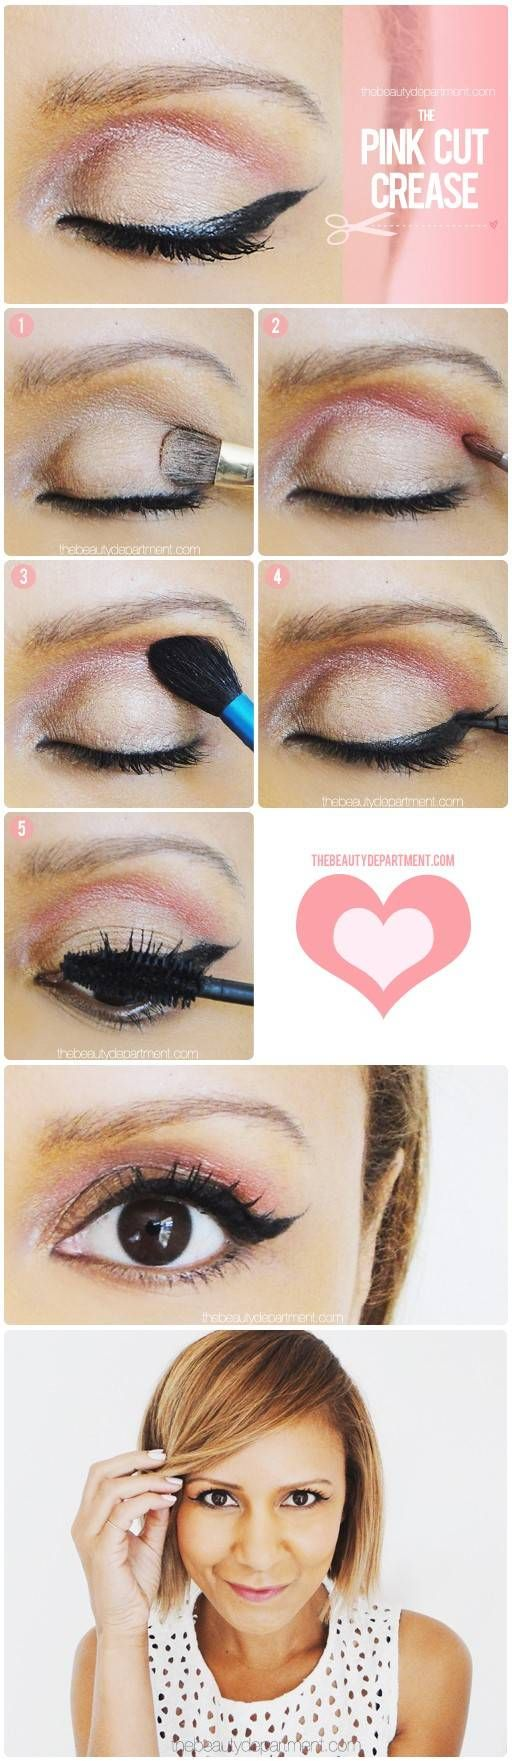 thebeautydepartment.com pink cut crease